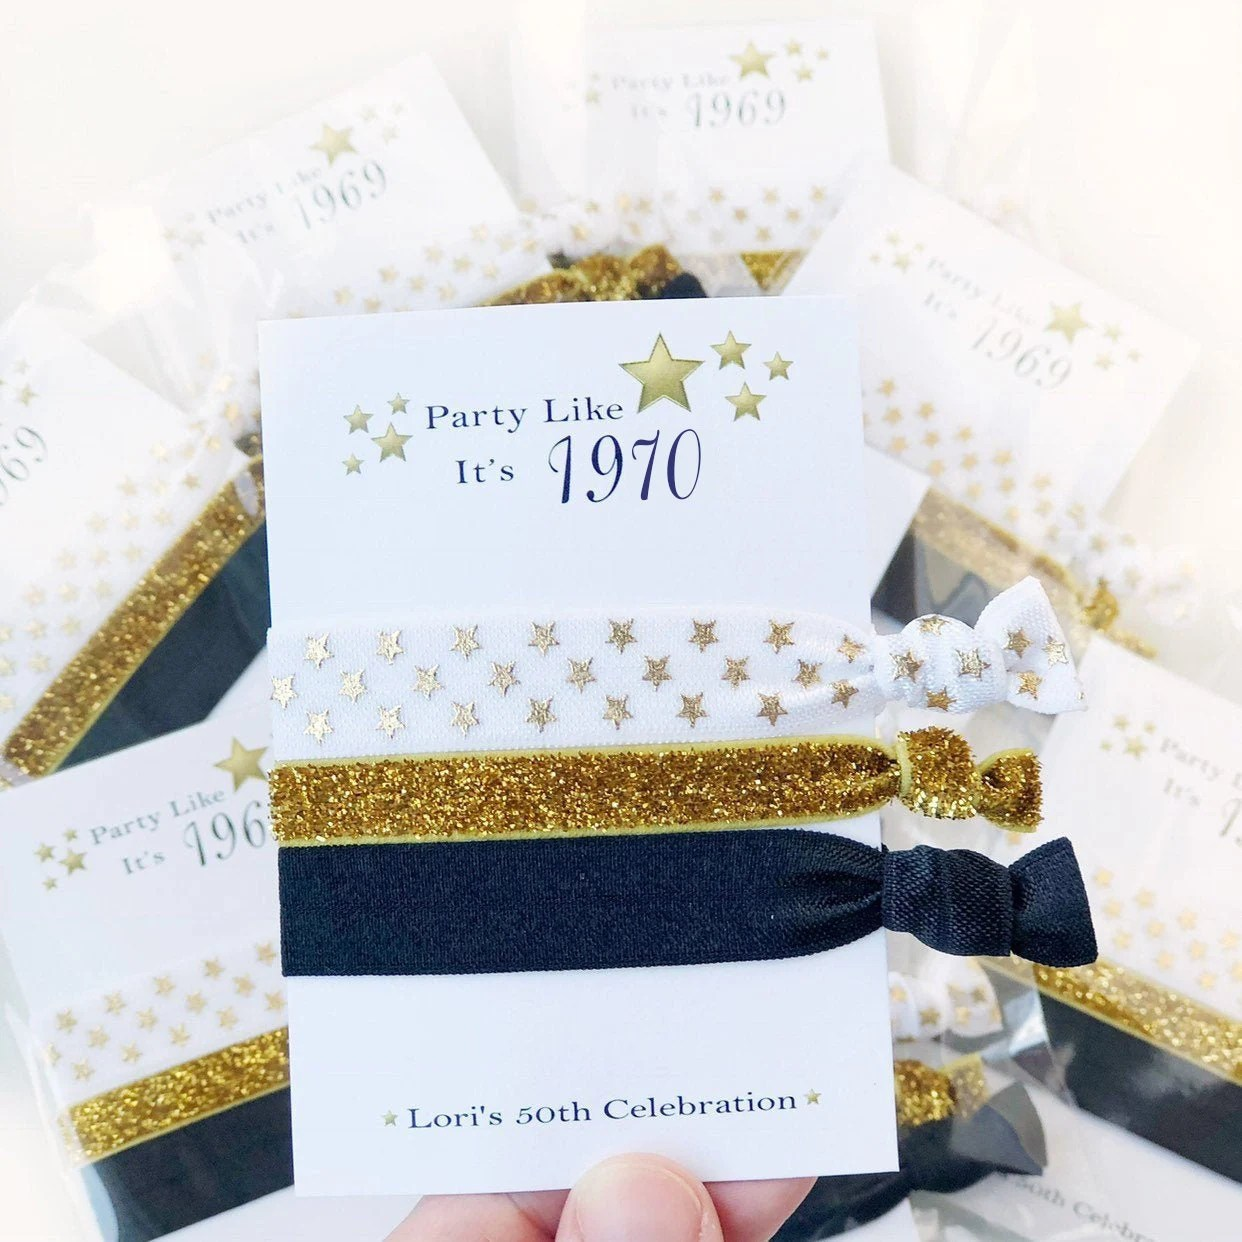 50th Birthday Party Favors 50th Birthday Favors For Women Etsy